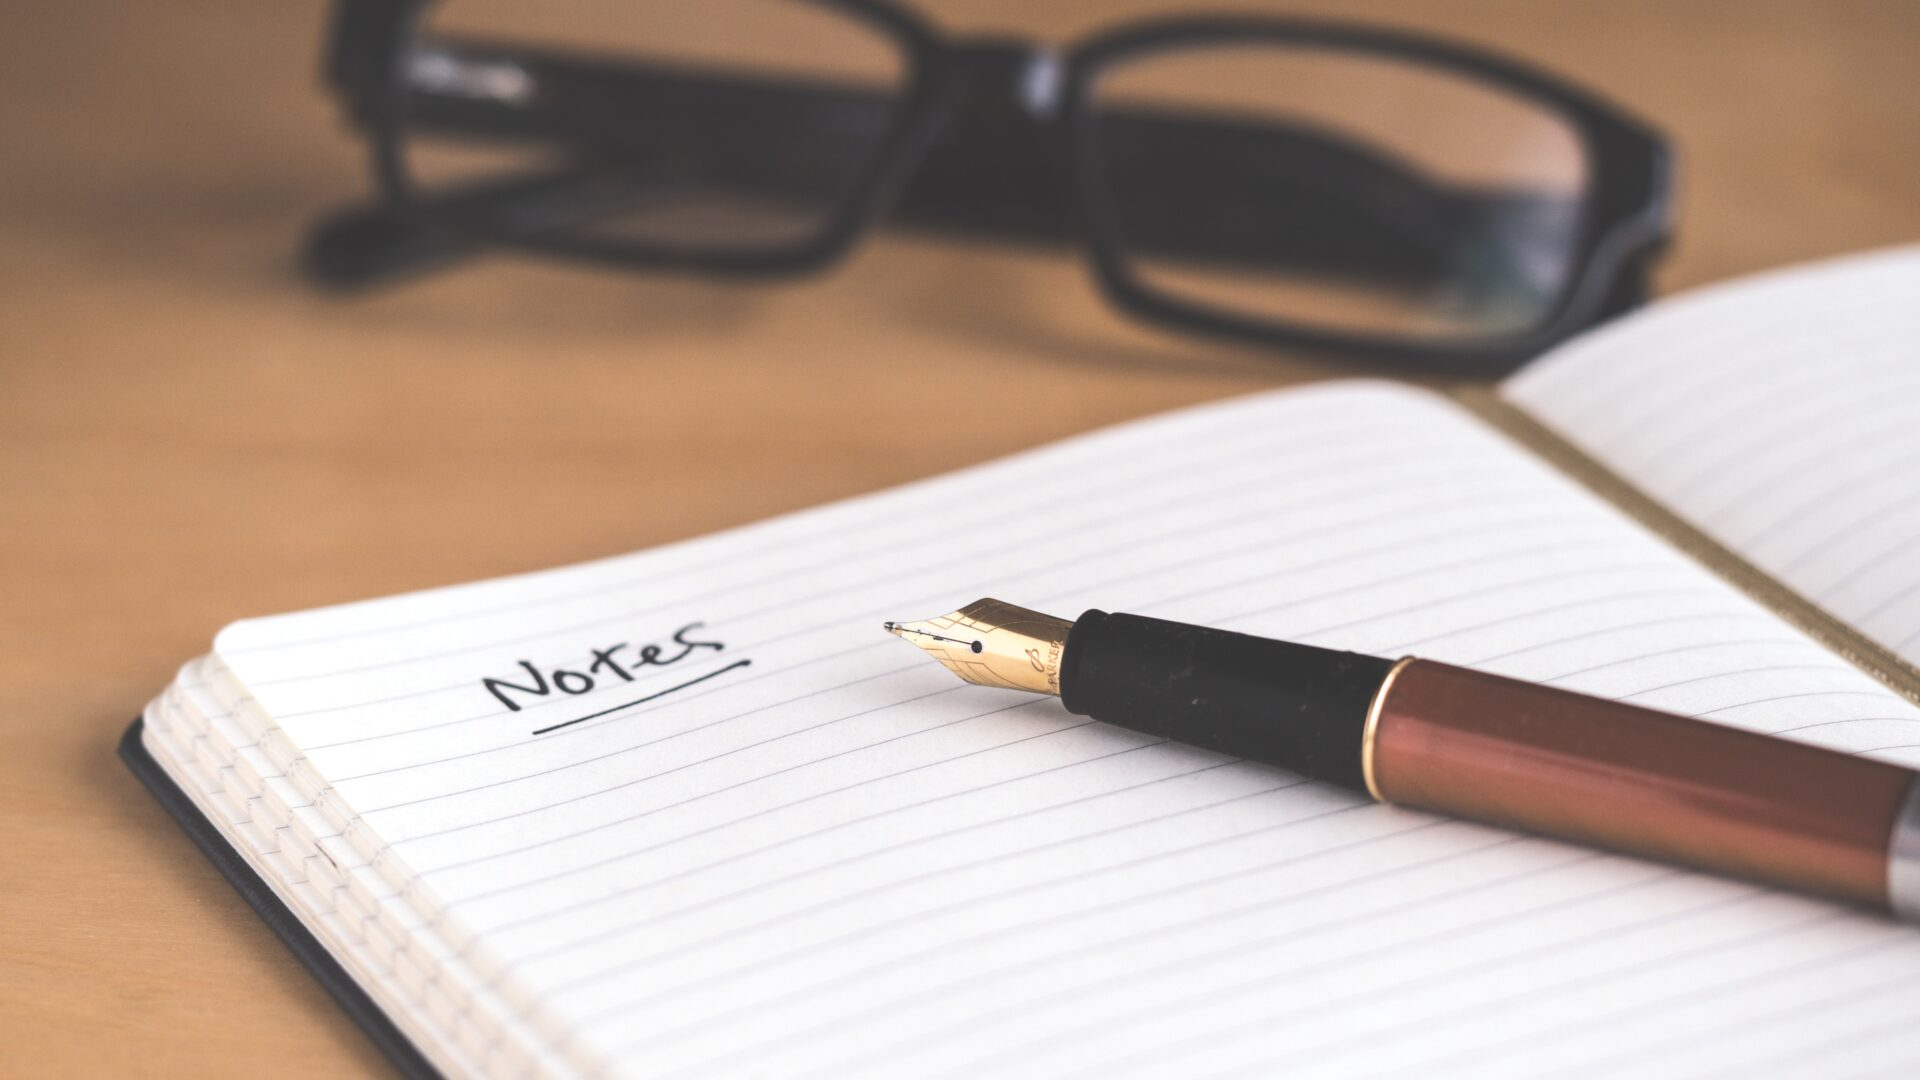 notepad, pen and glasses